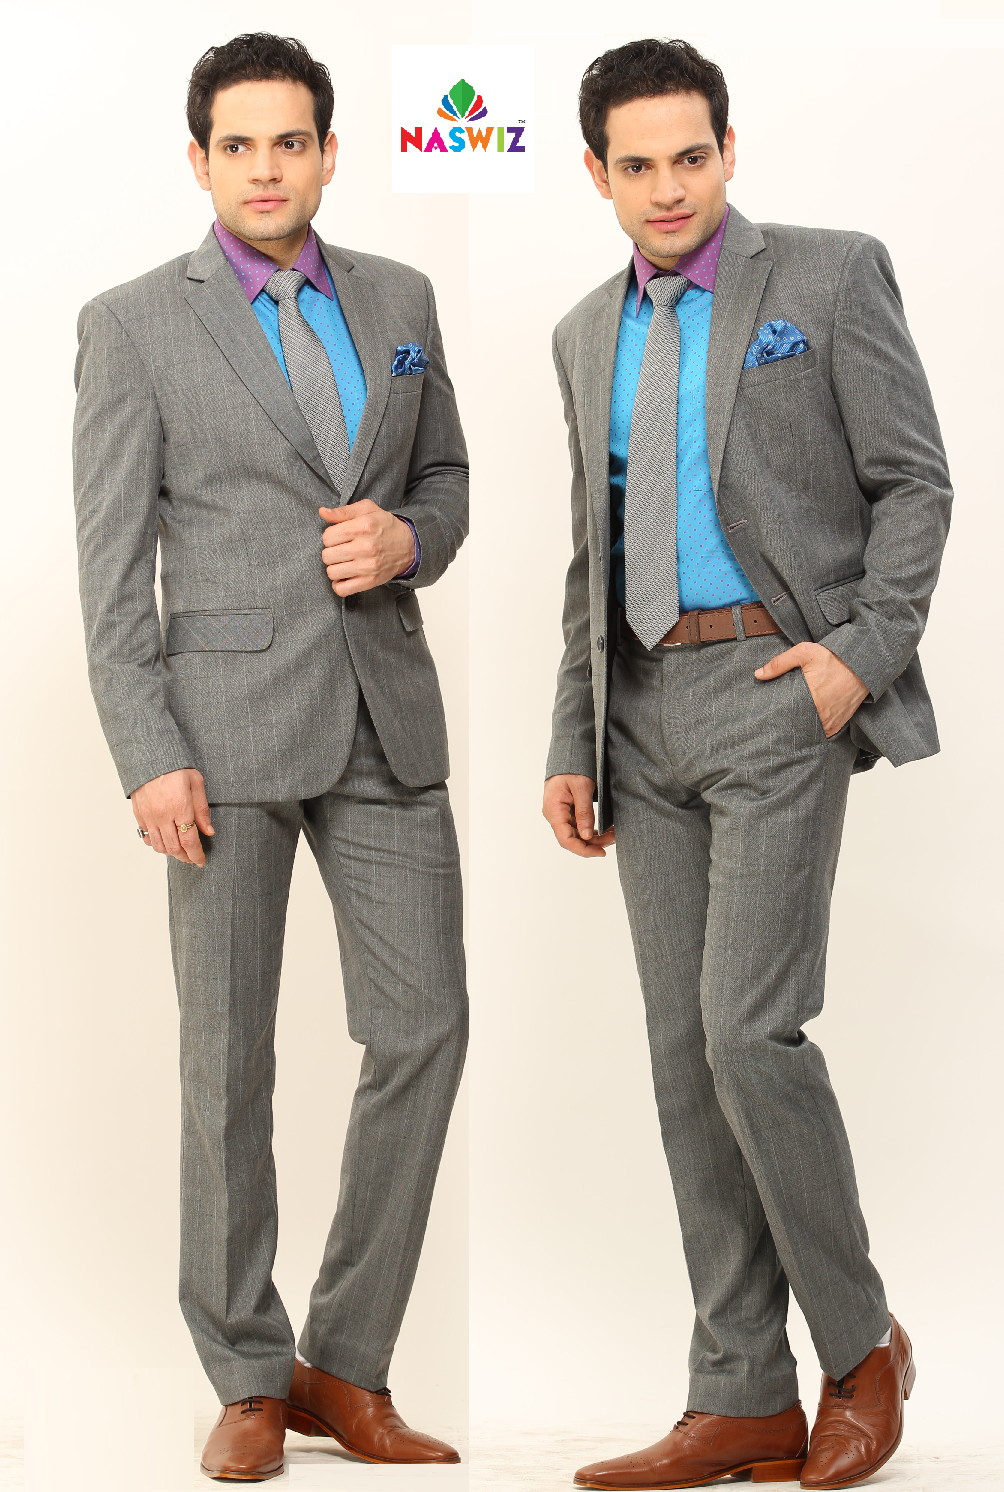 Are U Ready To Get Married? Buy a Good & Versatile #Suit for Your #Wedding. Don't be late, Its Ur day! Click to Buy: http://www.myshopwiz.com/myshop/mens-suit.aspx …